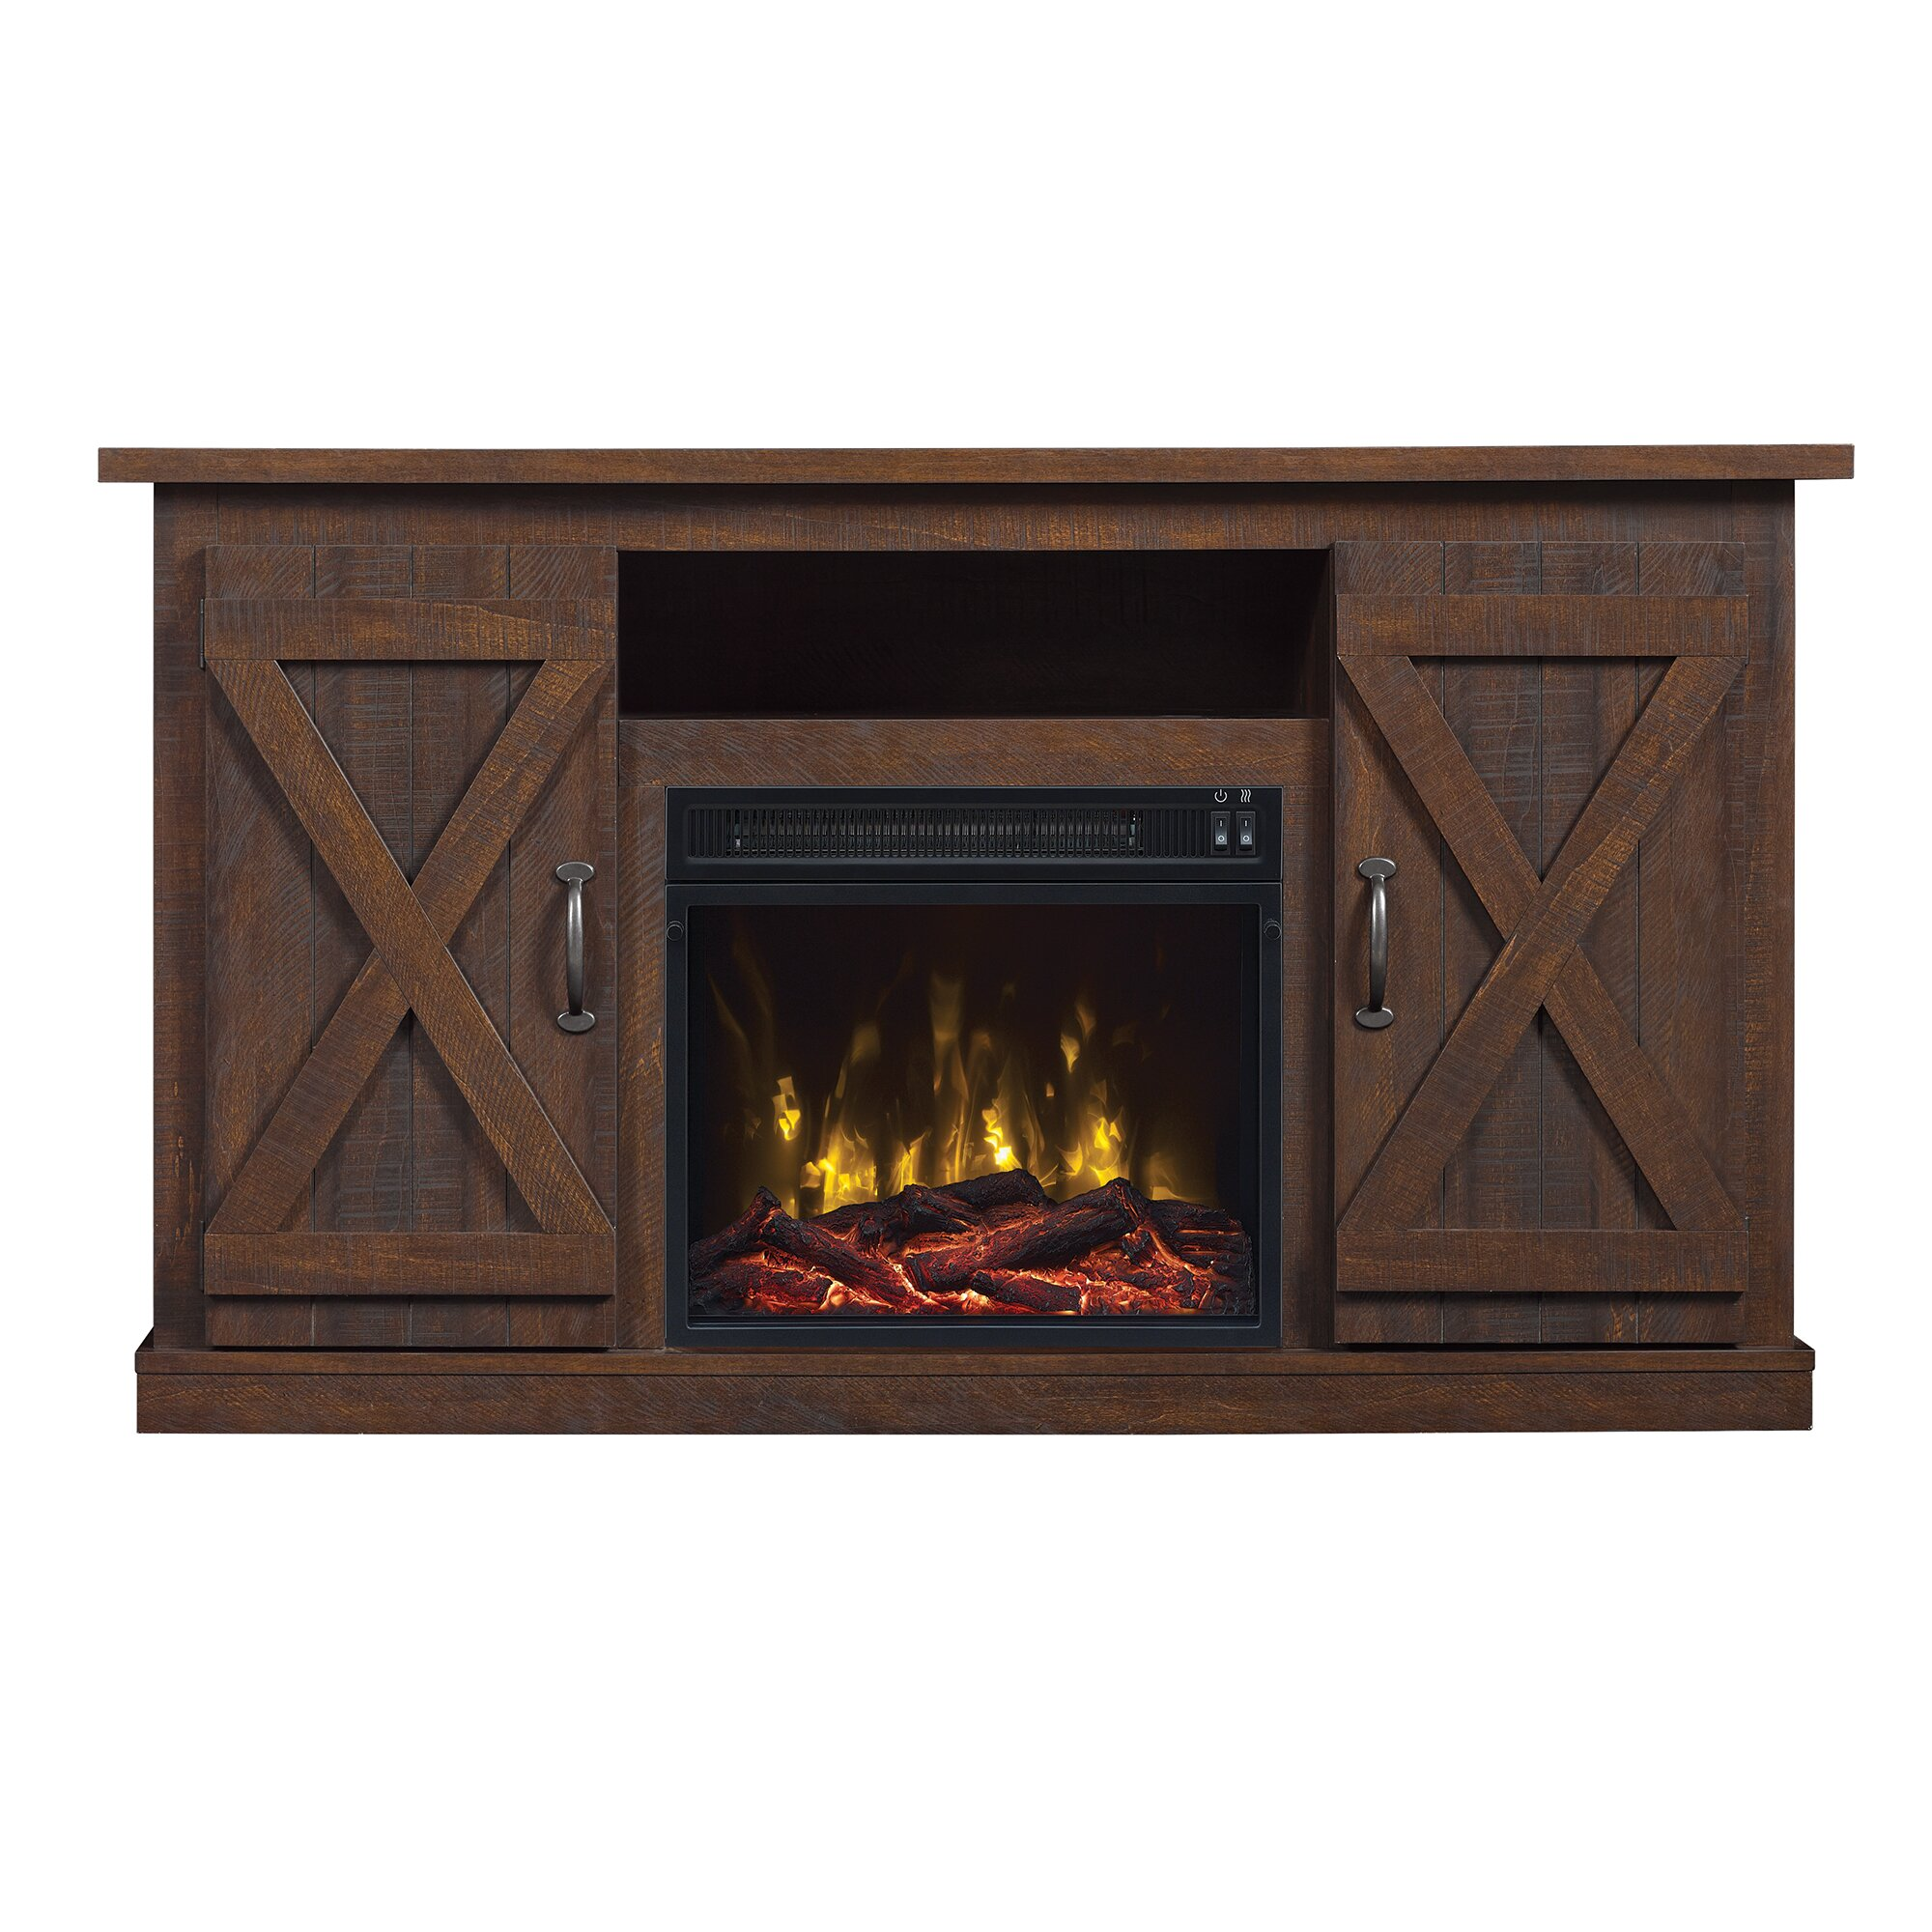 White tv stand with electric fireplace - Serein Tv Stand With Electric Fireplace